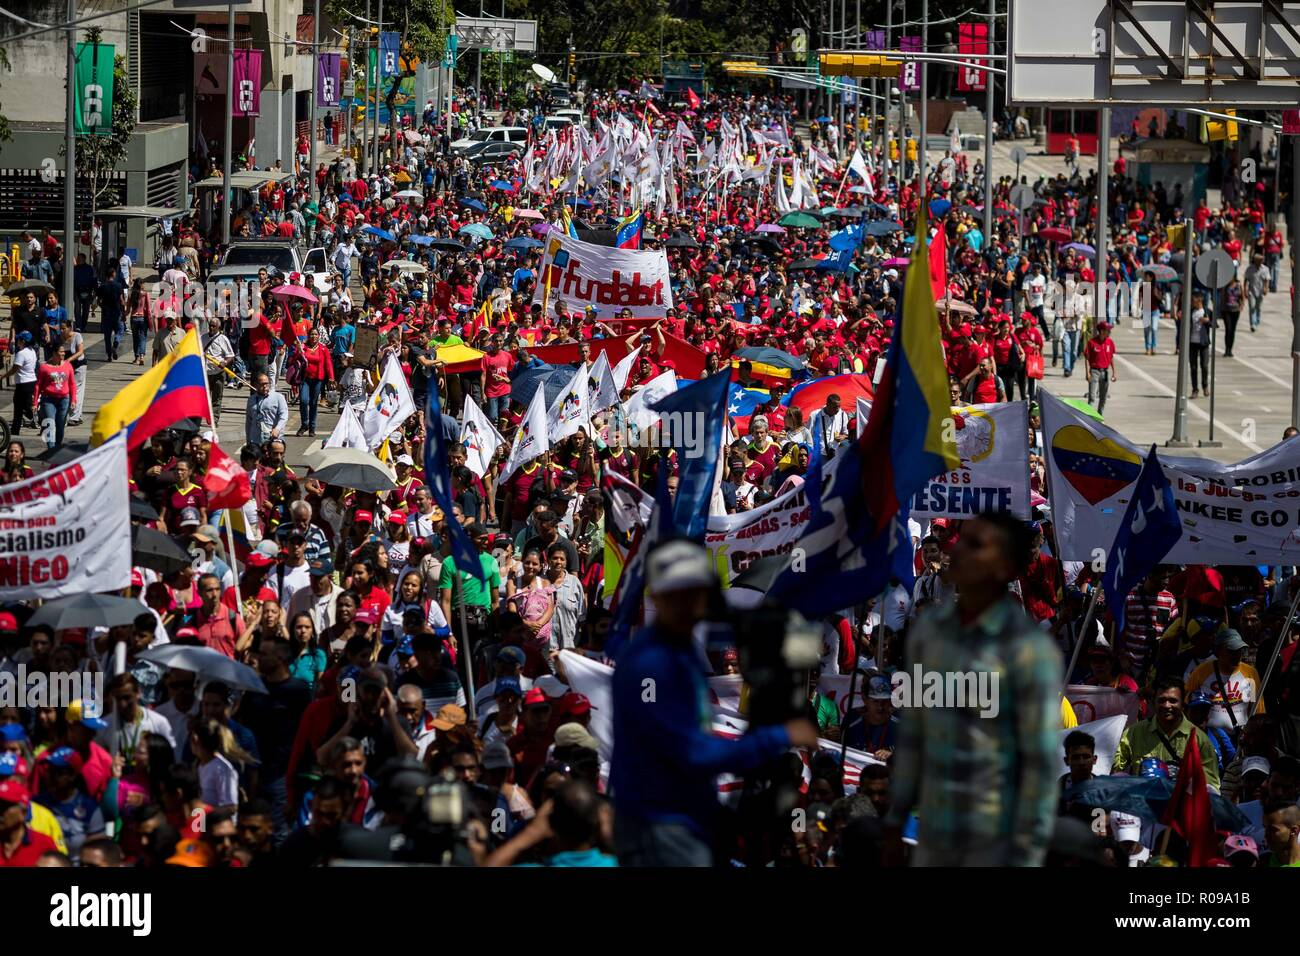 Caracas, Venezuela. 02nd Nov, 2018. Sympathizers of Nicolas Madro's Government participate in a march against imperialism and in honor of Venezuelan folk singer Ali Primera, in Caracas, Venezuela, 02 November 2018. Credit: Miguel Gutierrez/EFE/Alamy Live News - Stock Image